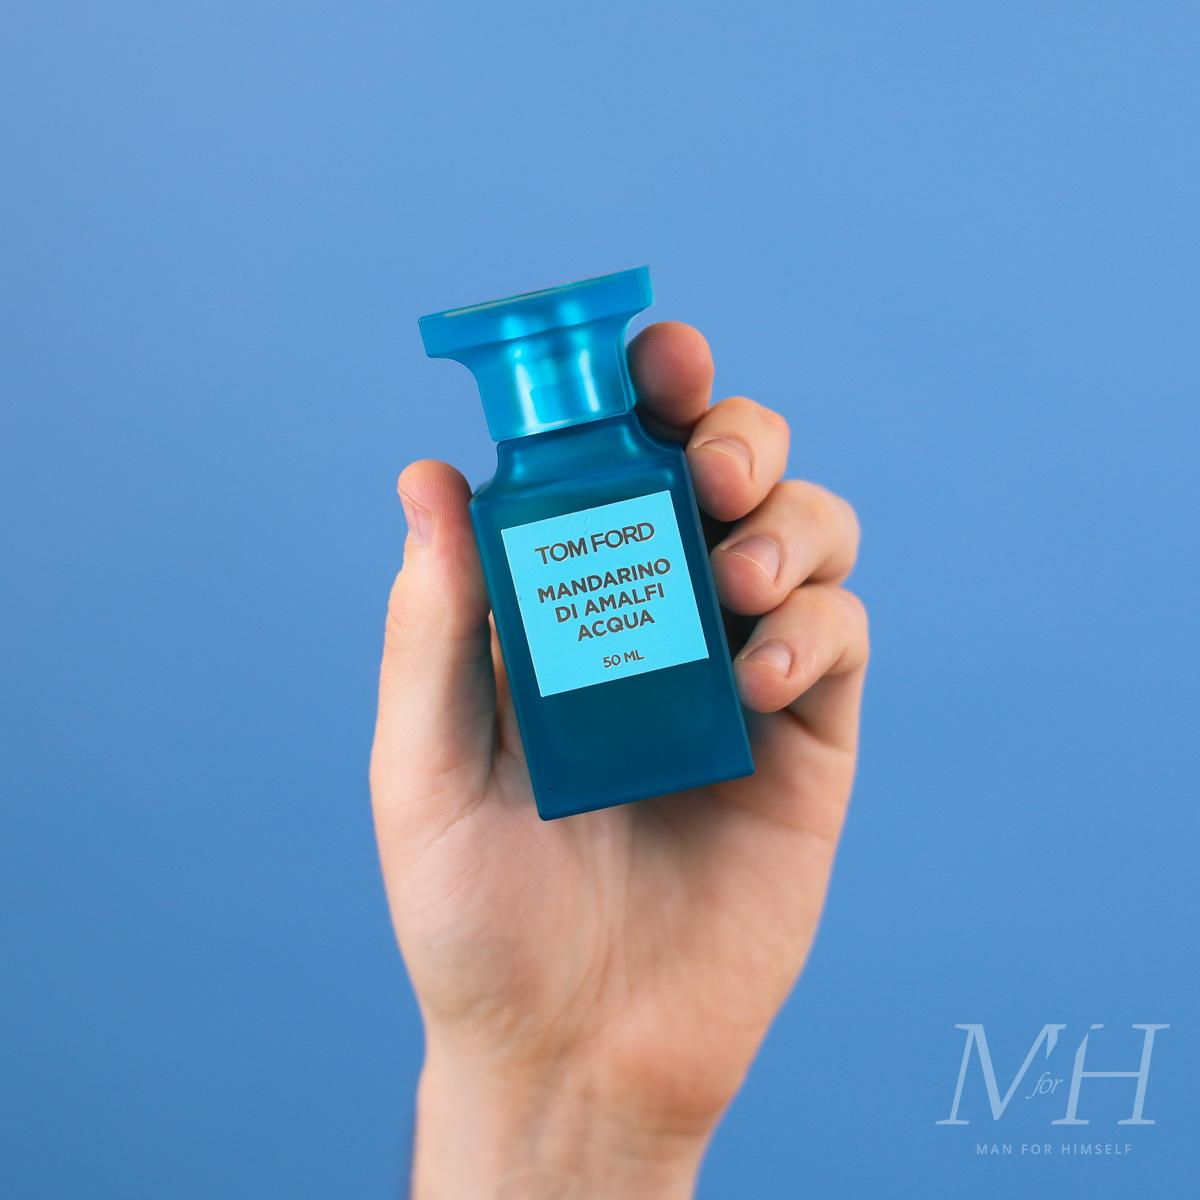 tom-ford-mandarino-di-amalfi-acqua-fragrance-product-man-for-himself